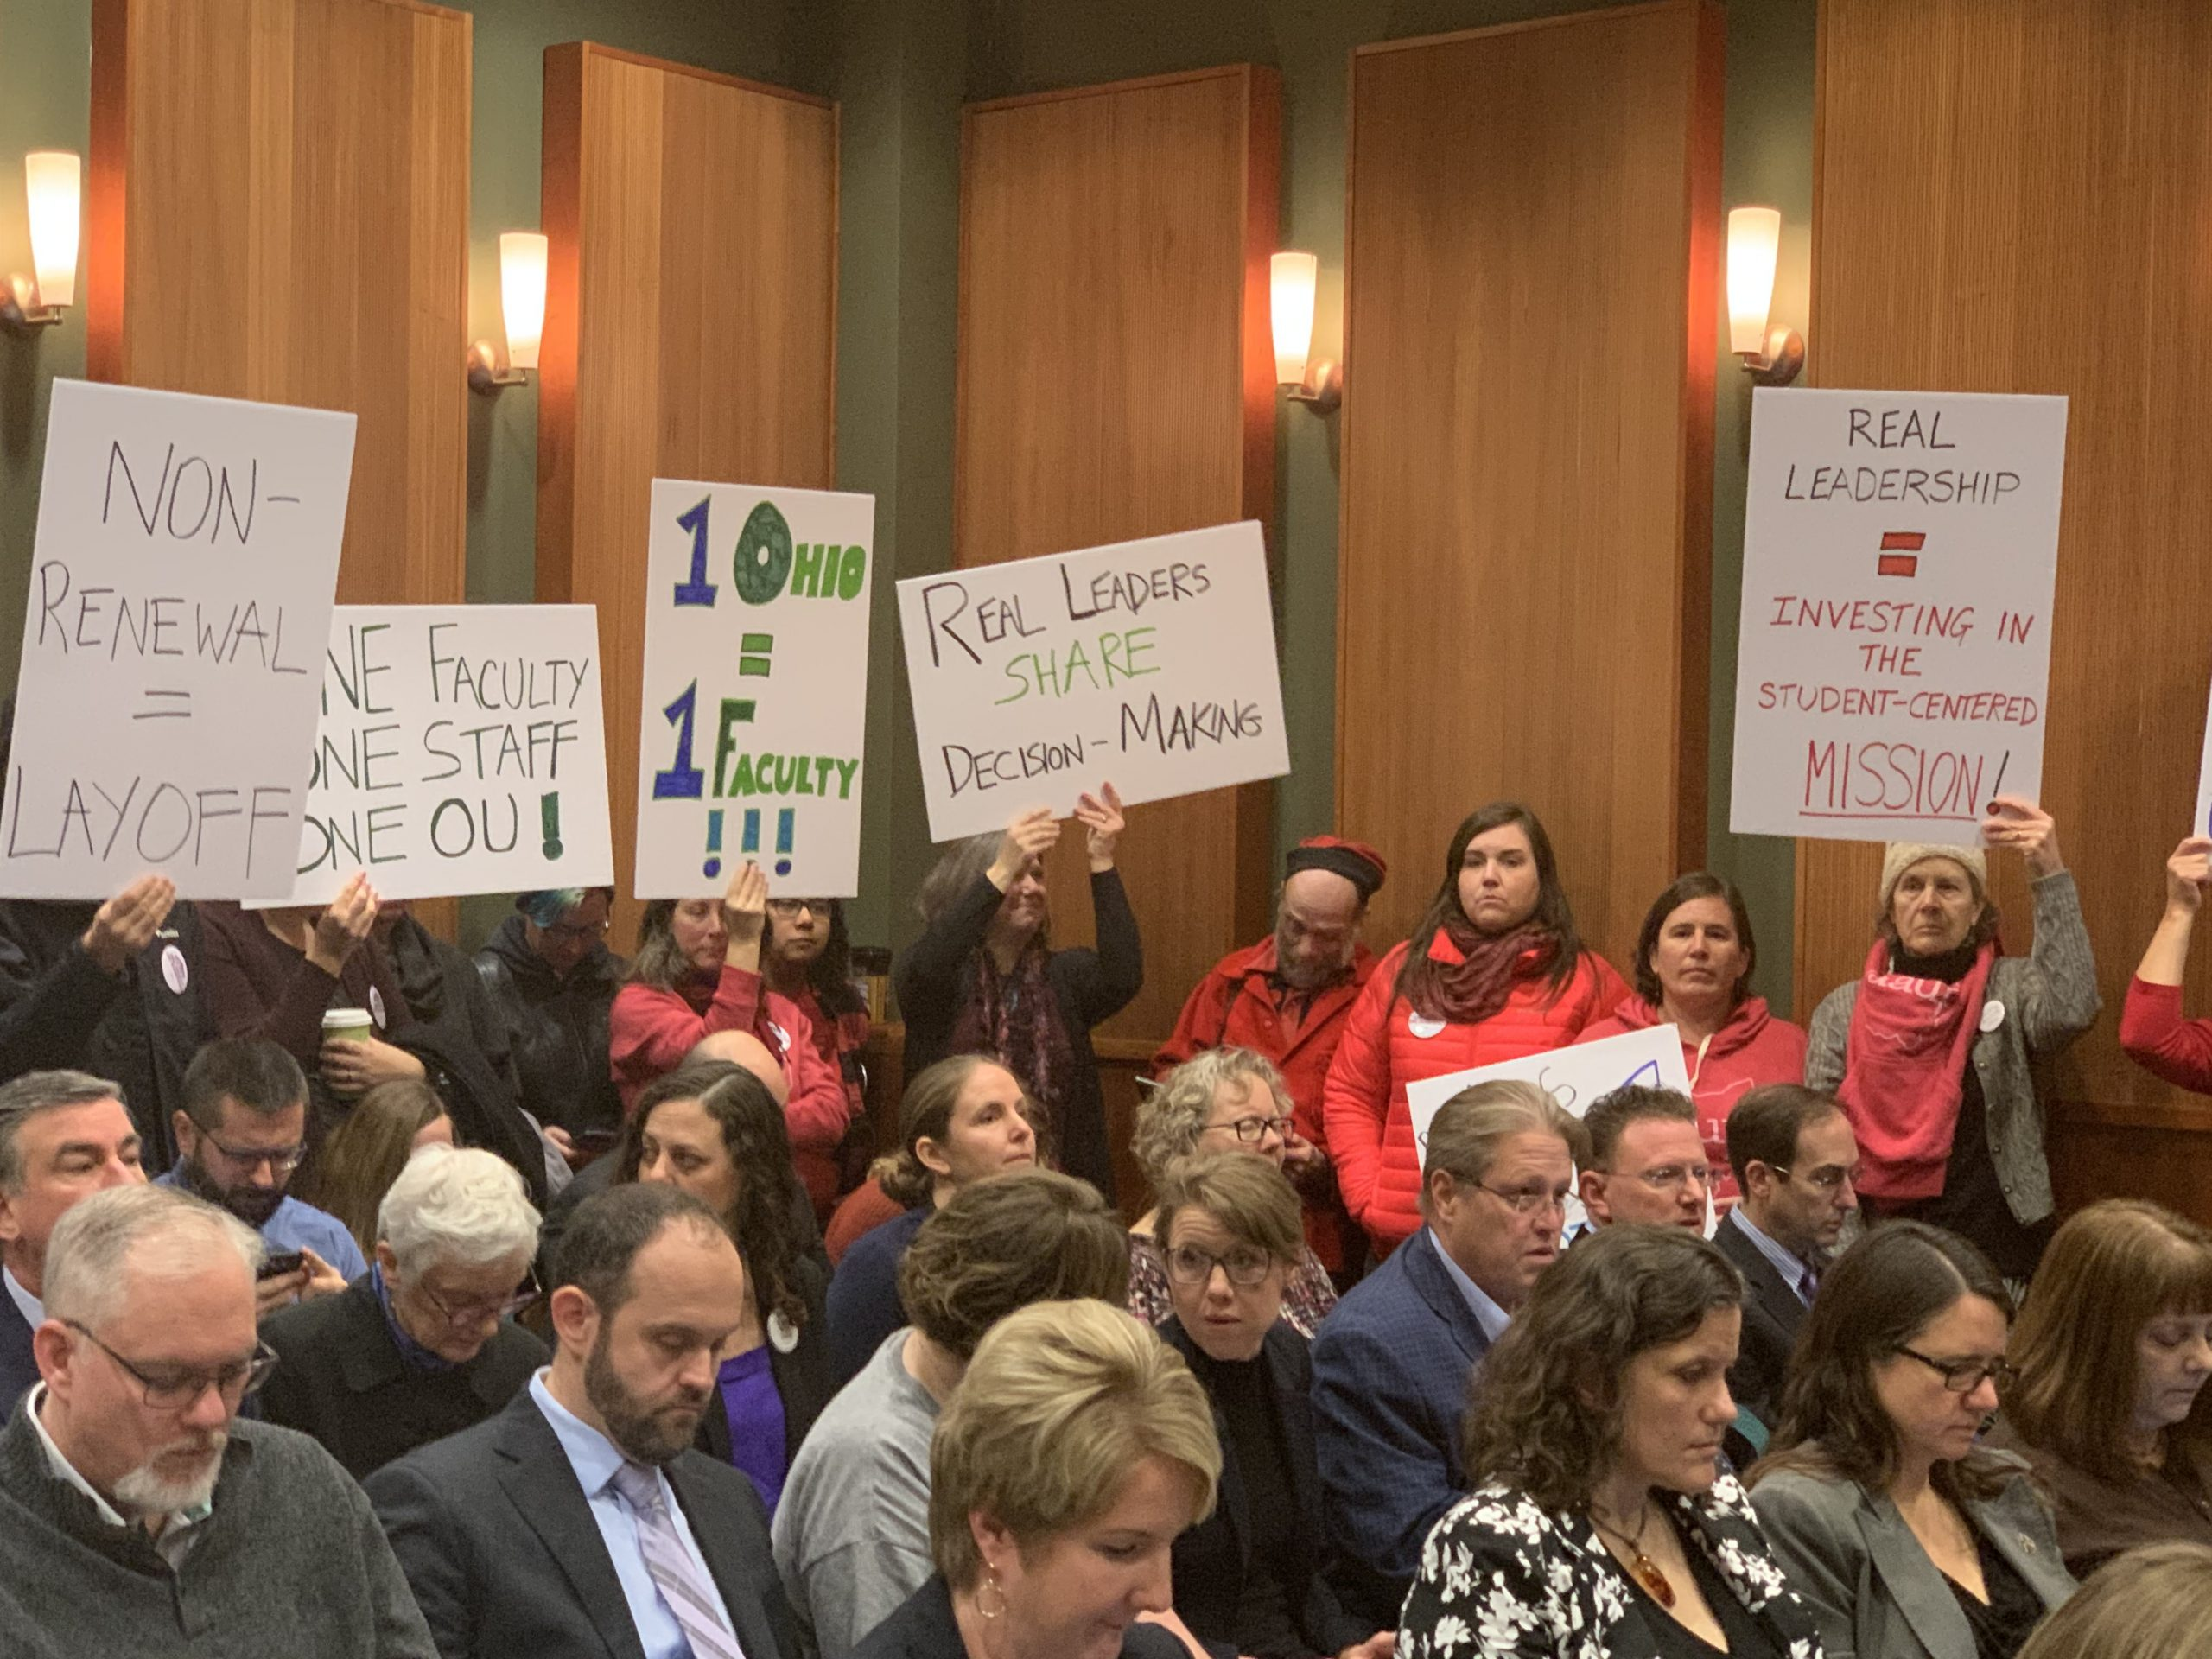 Protestors stand in crowded meeting with signs.